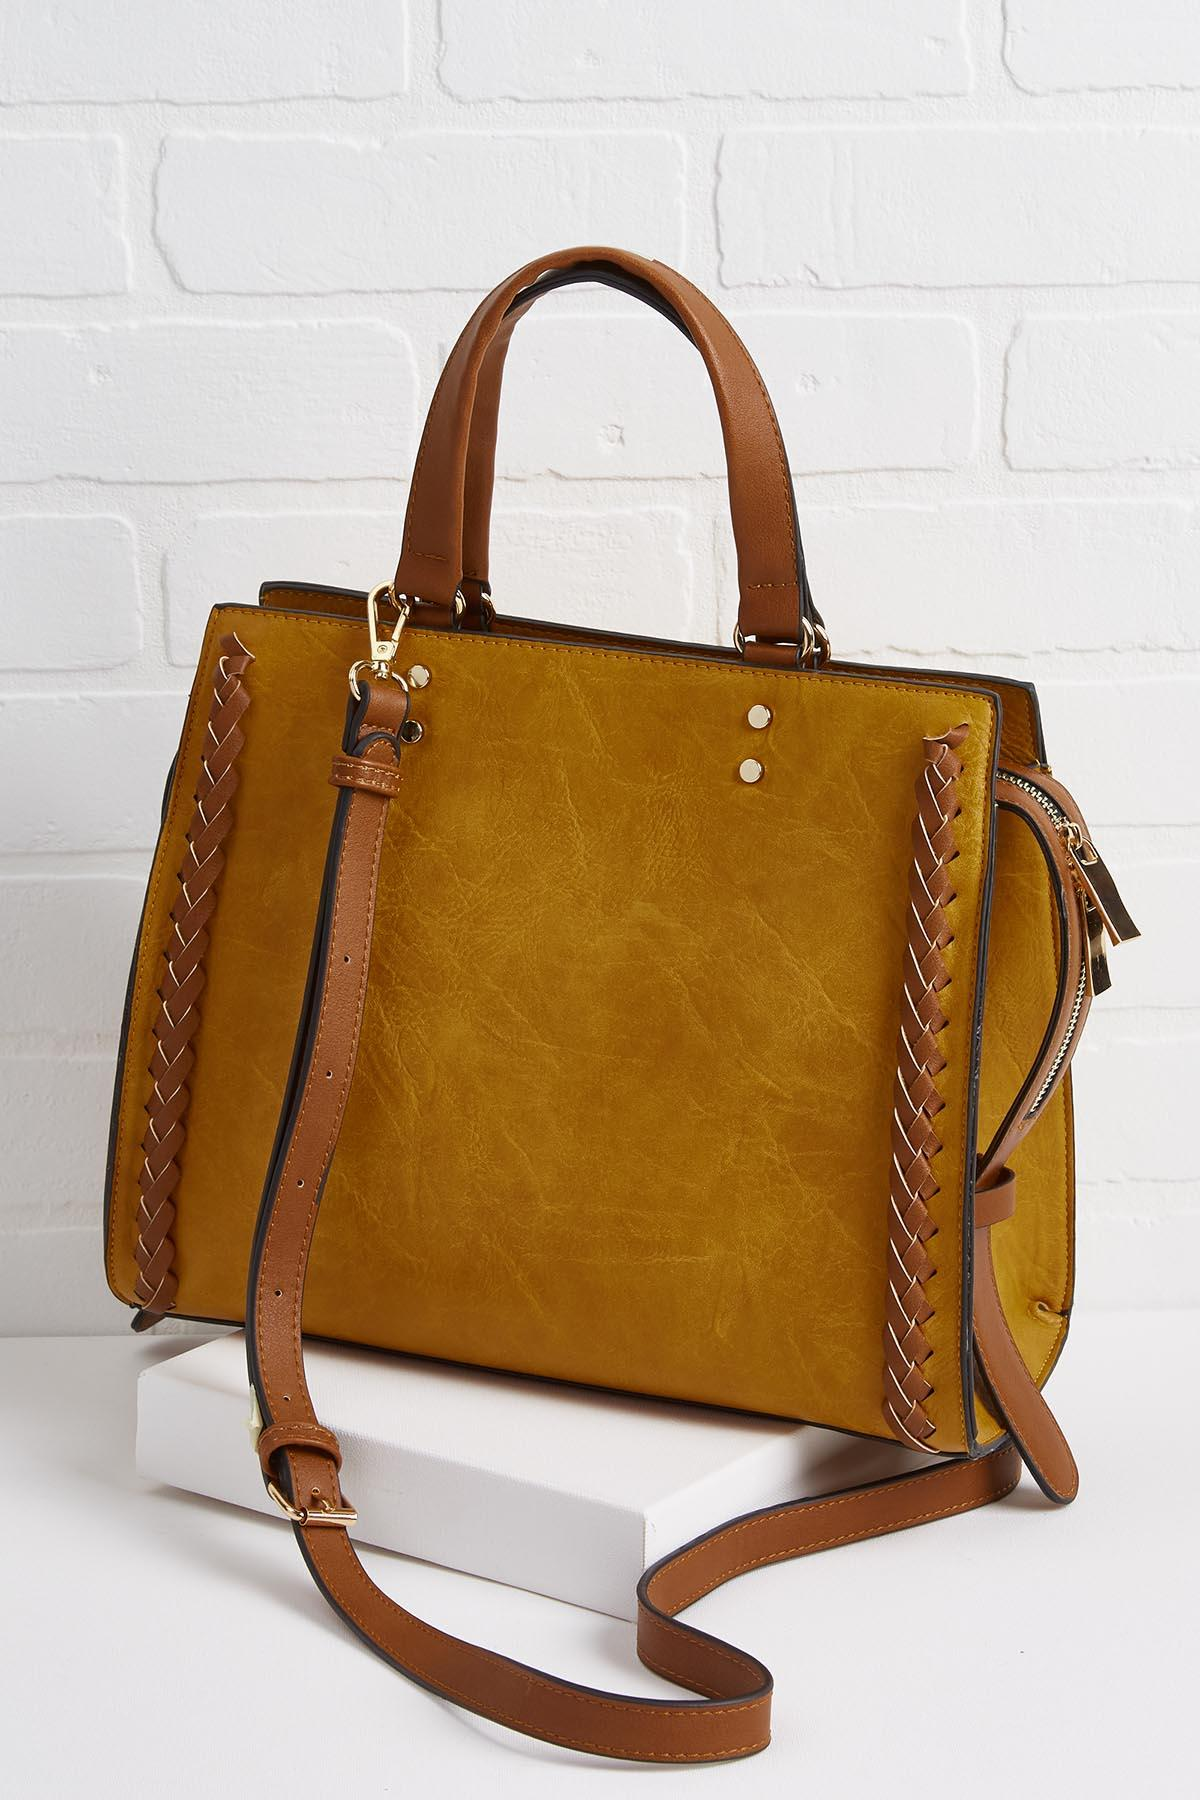 Match Braid In Heaven Satchel